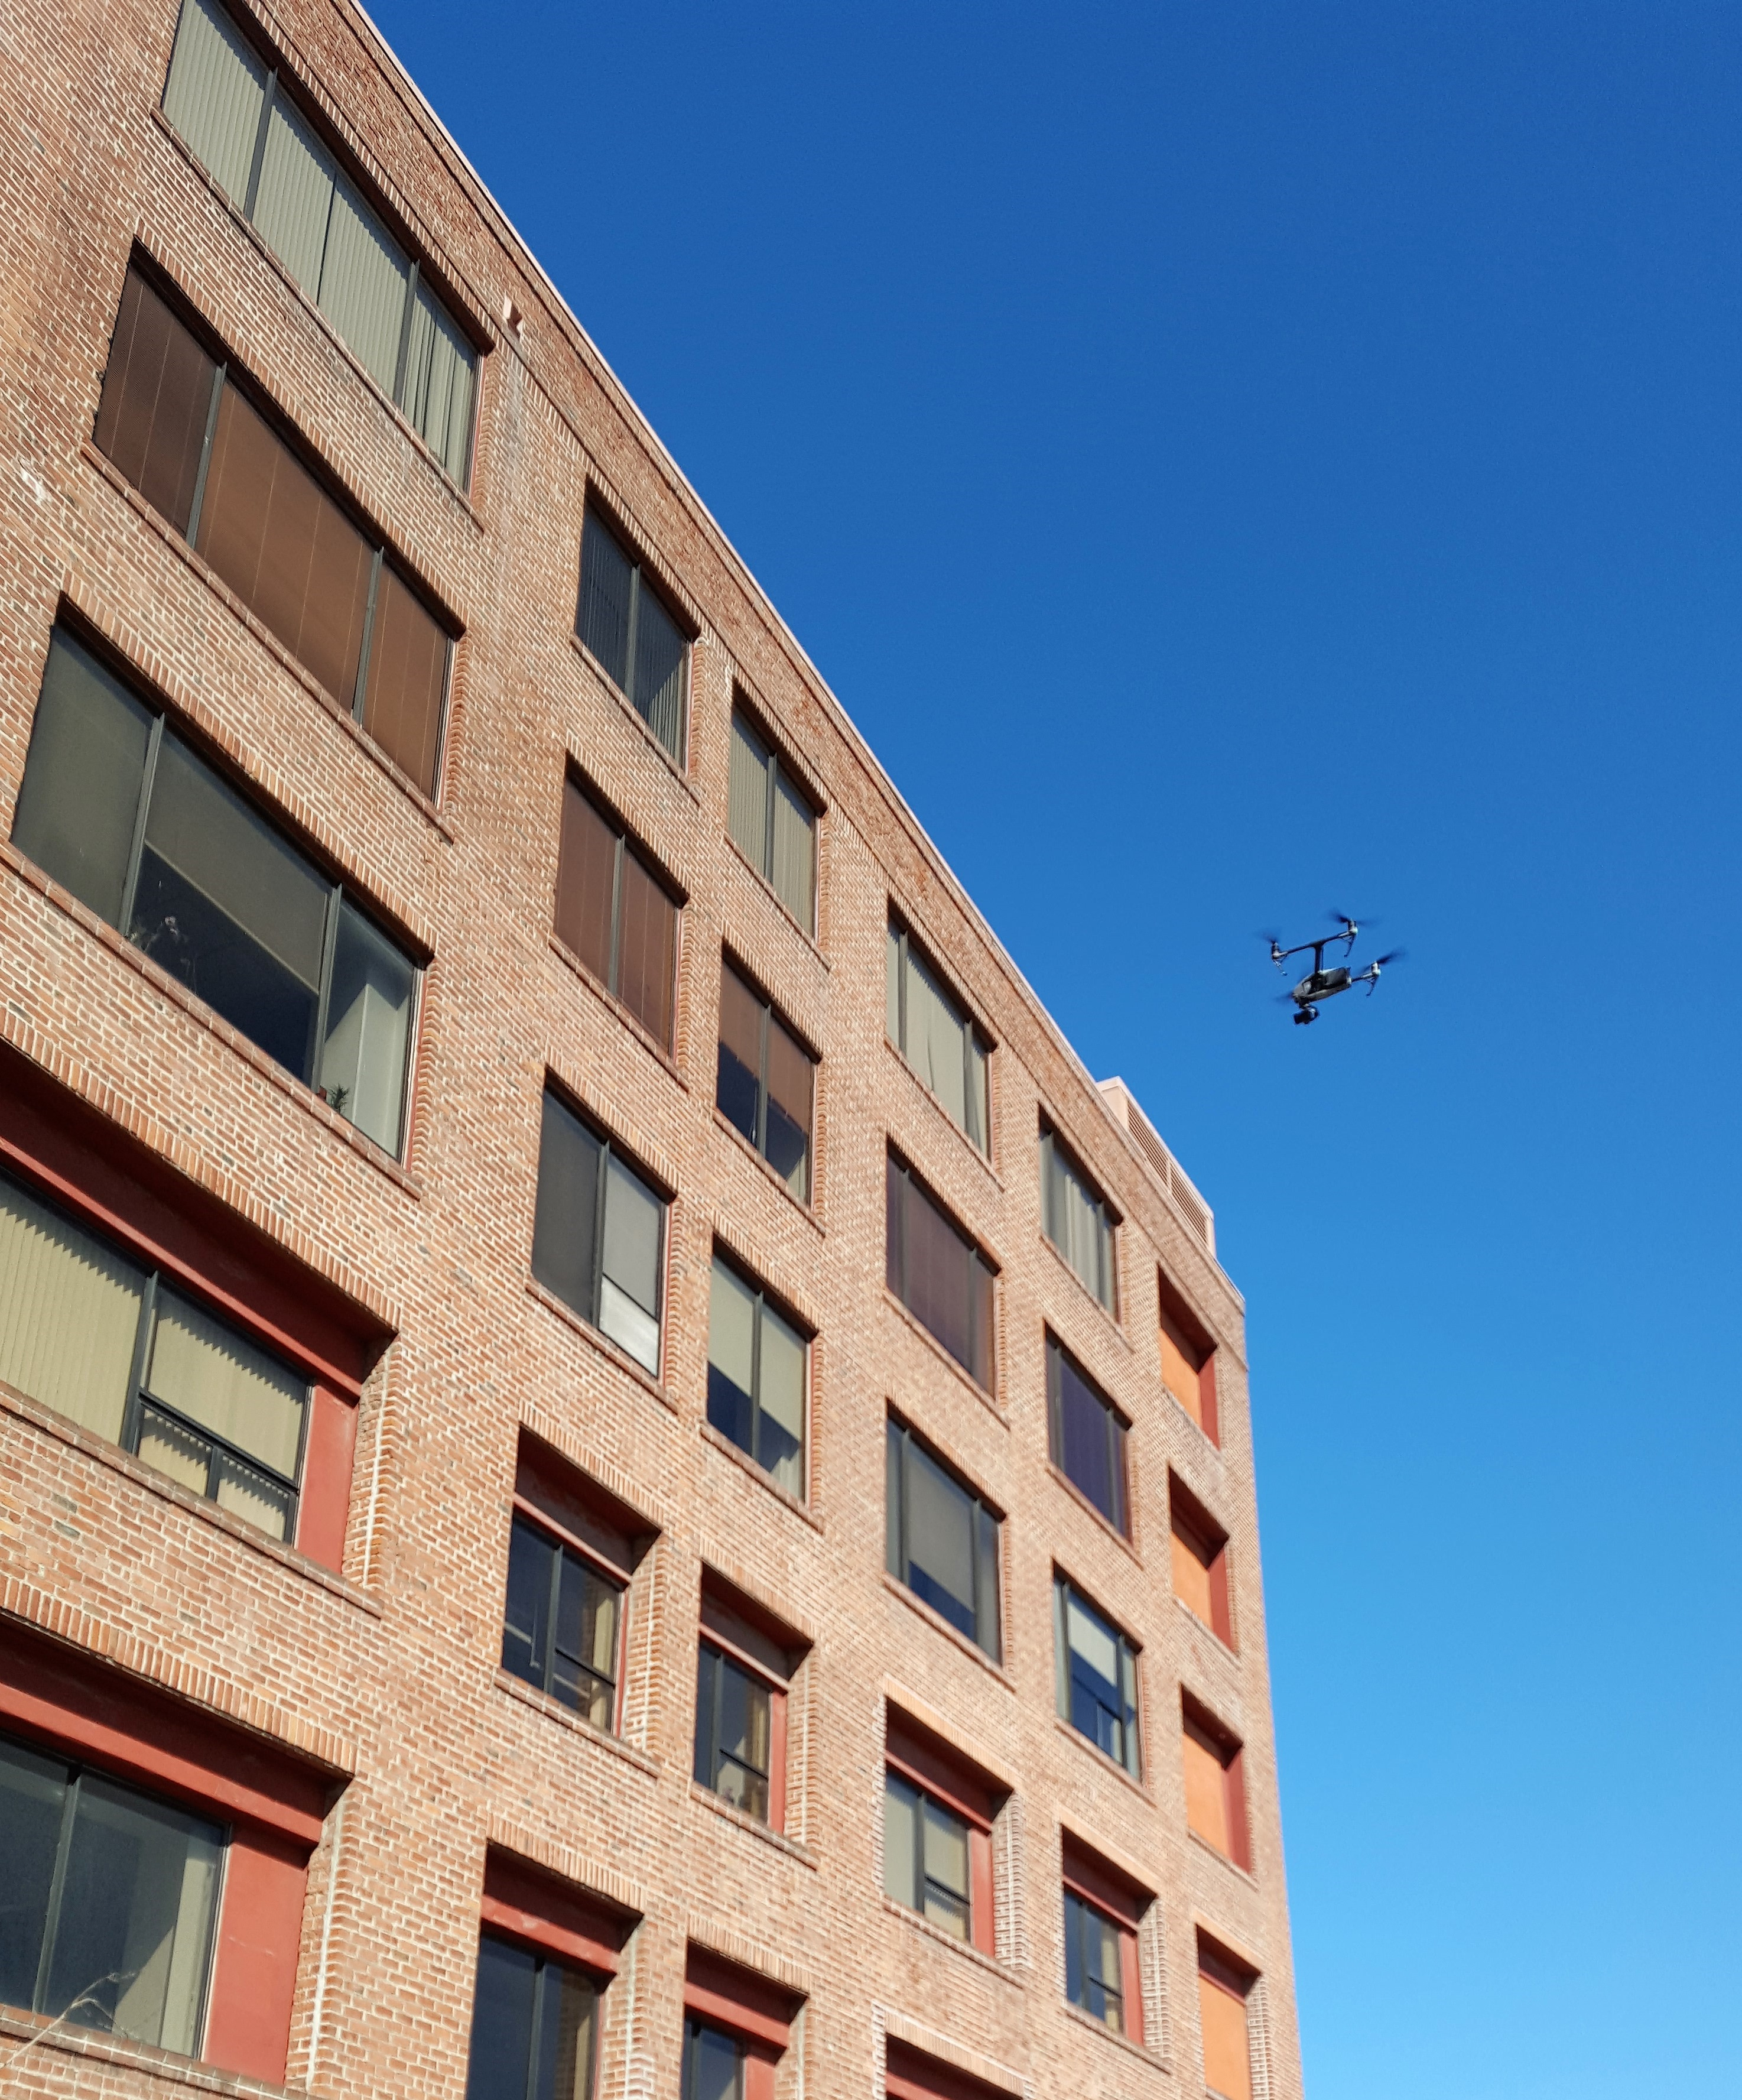 Estructure uses Survey Drone to Save Time and Money